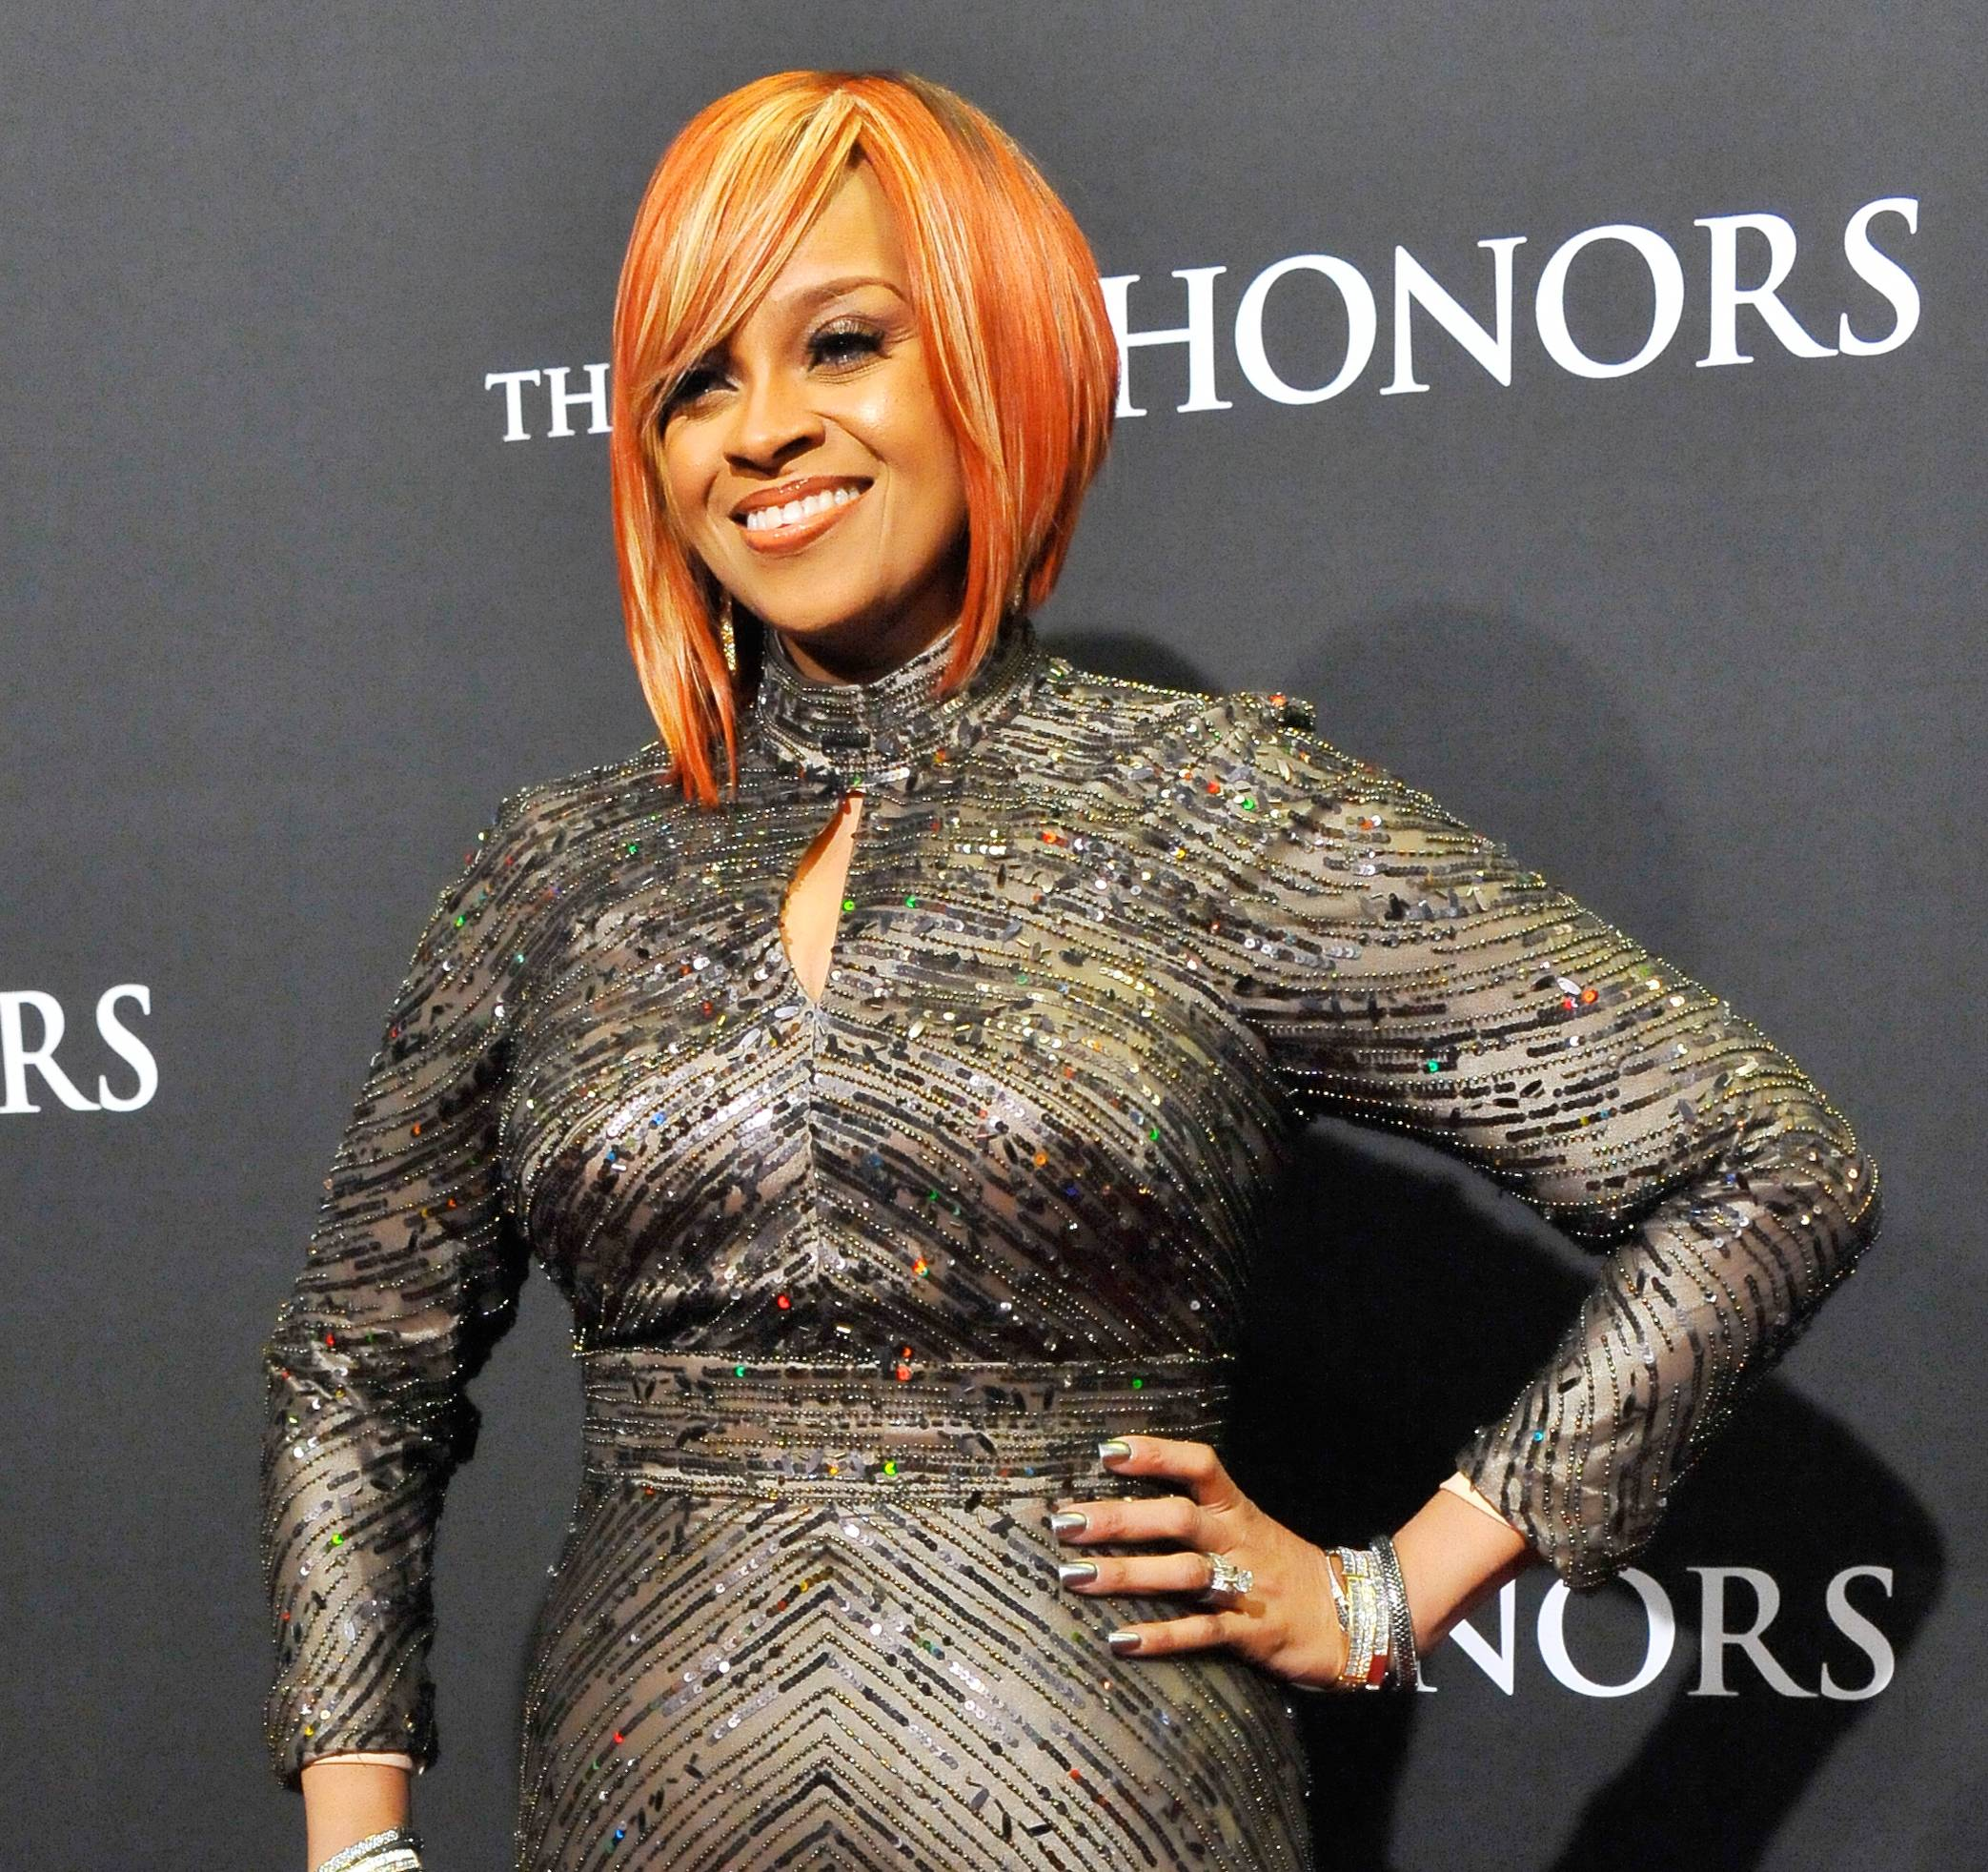 The Gospel Dream  - Gospel artist Karen Clark Sheard owns her own record company, has been part of a legendary female gospel group, earned Stellar Awards and Grammys and can't be stopped. (Photo: Larry French/BET/Getty Images for BET)